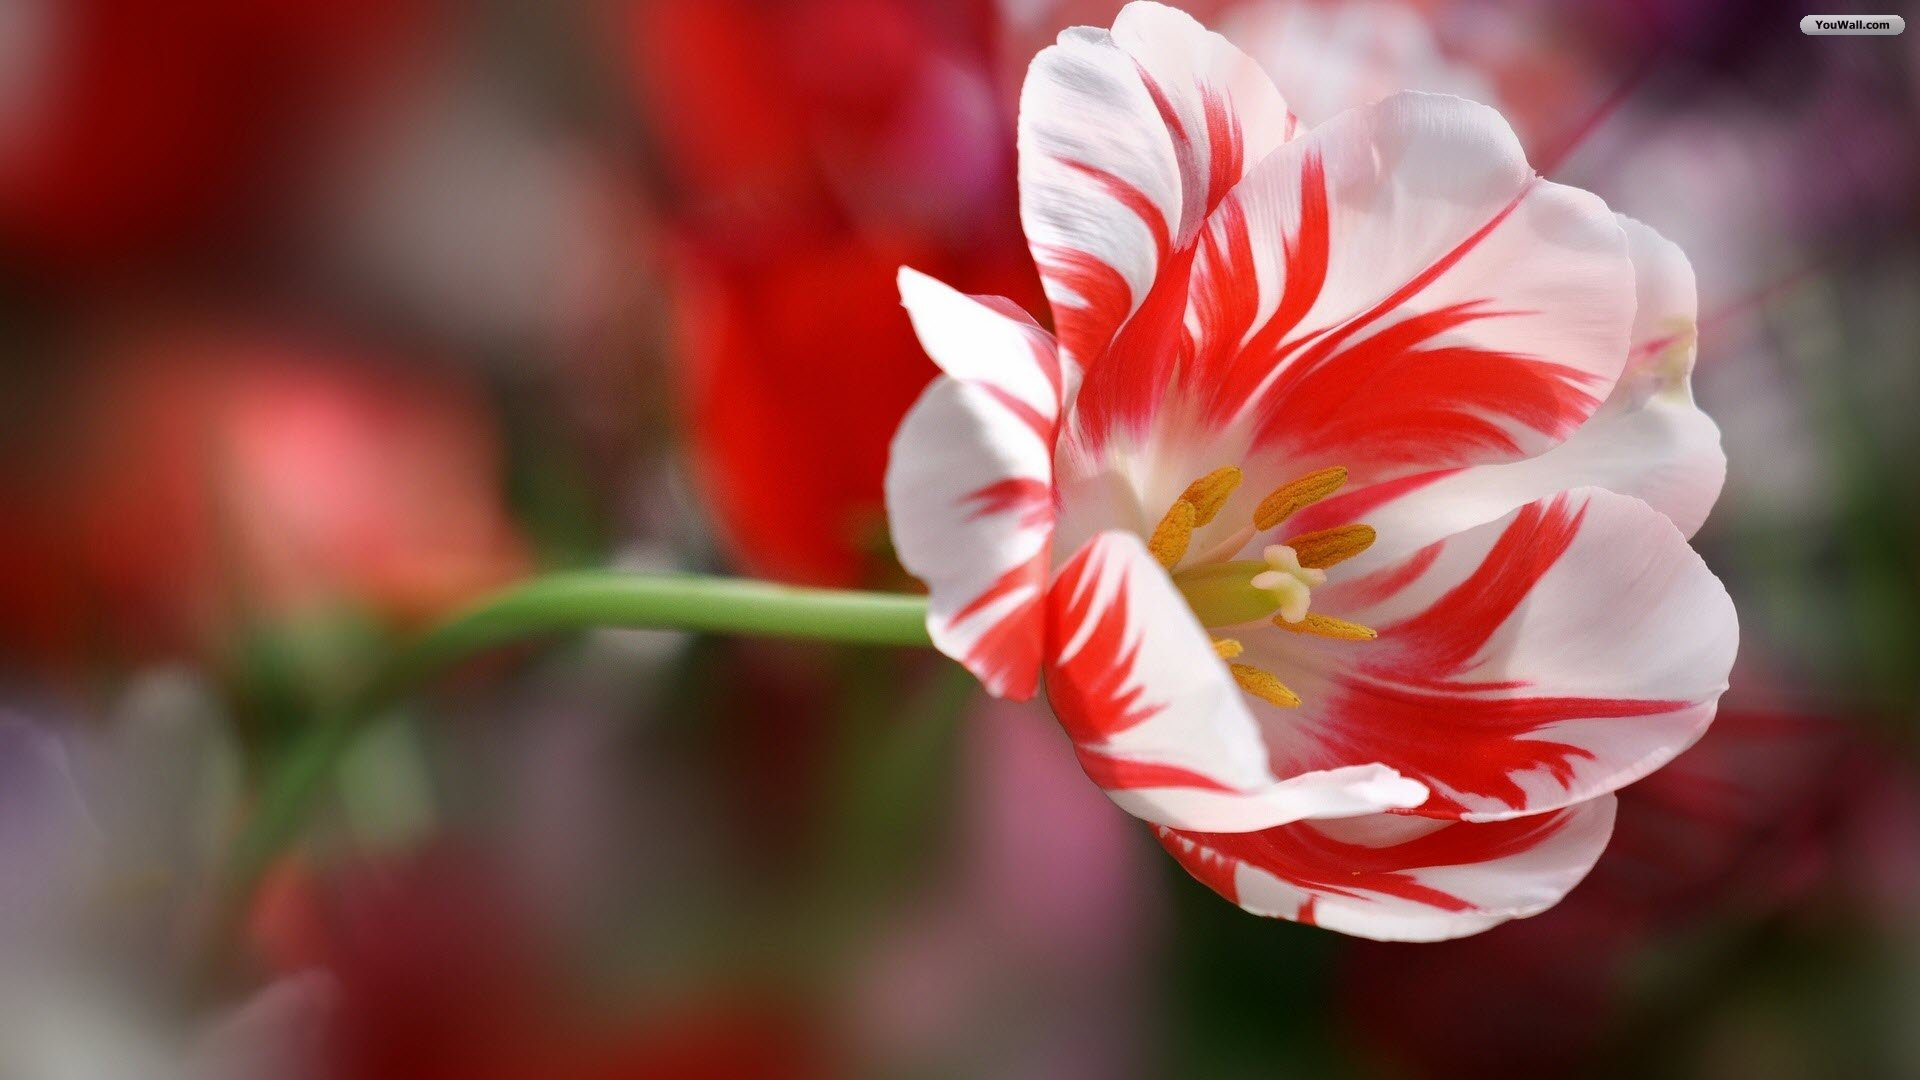 Red Flower HD Wallpapers